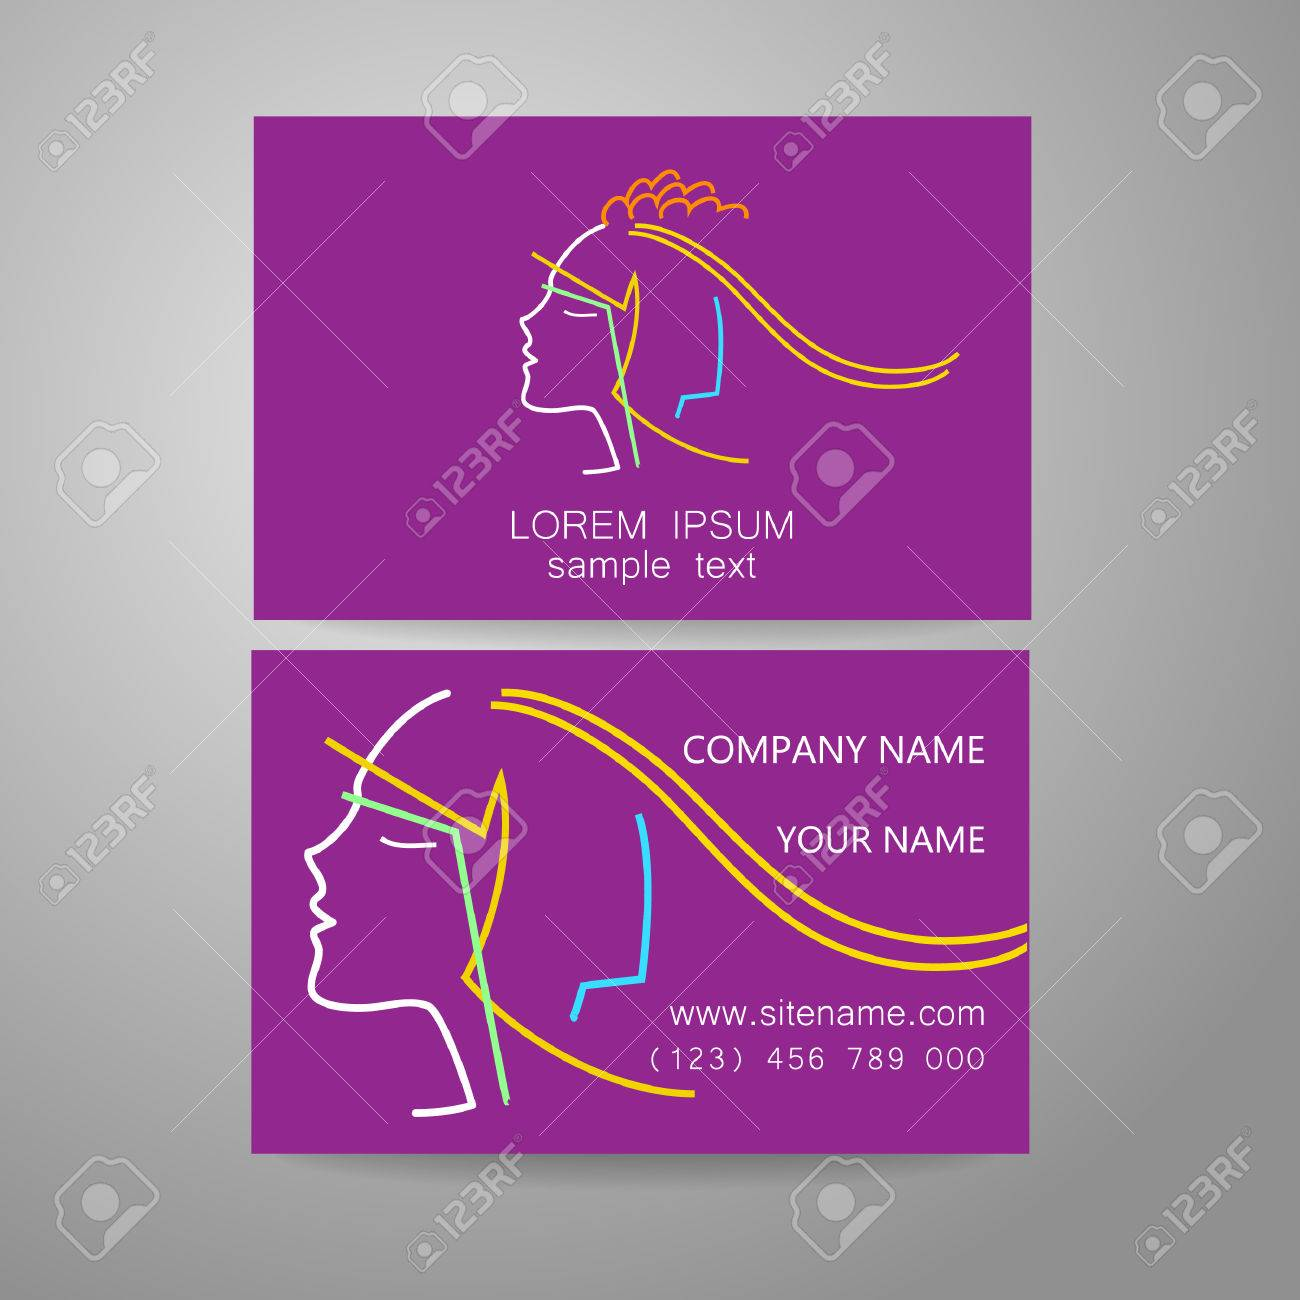 Hair Salon, Hairdresser - Template Logo. Branded Business Card ...